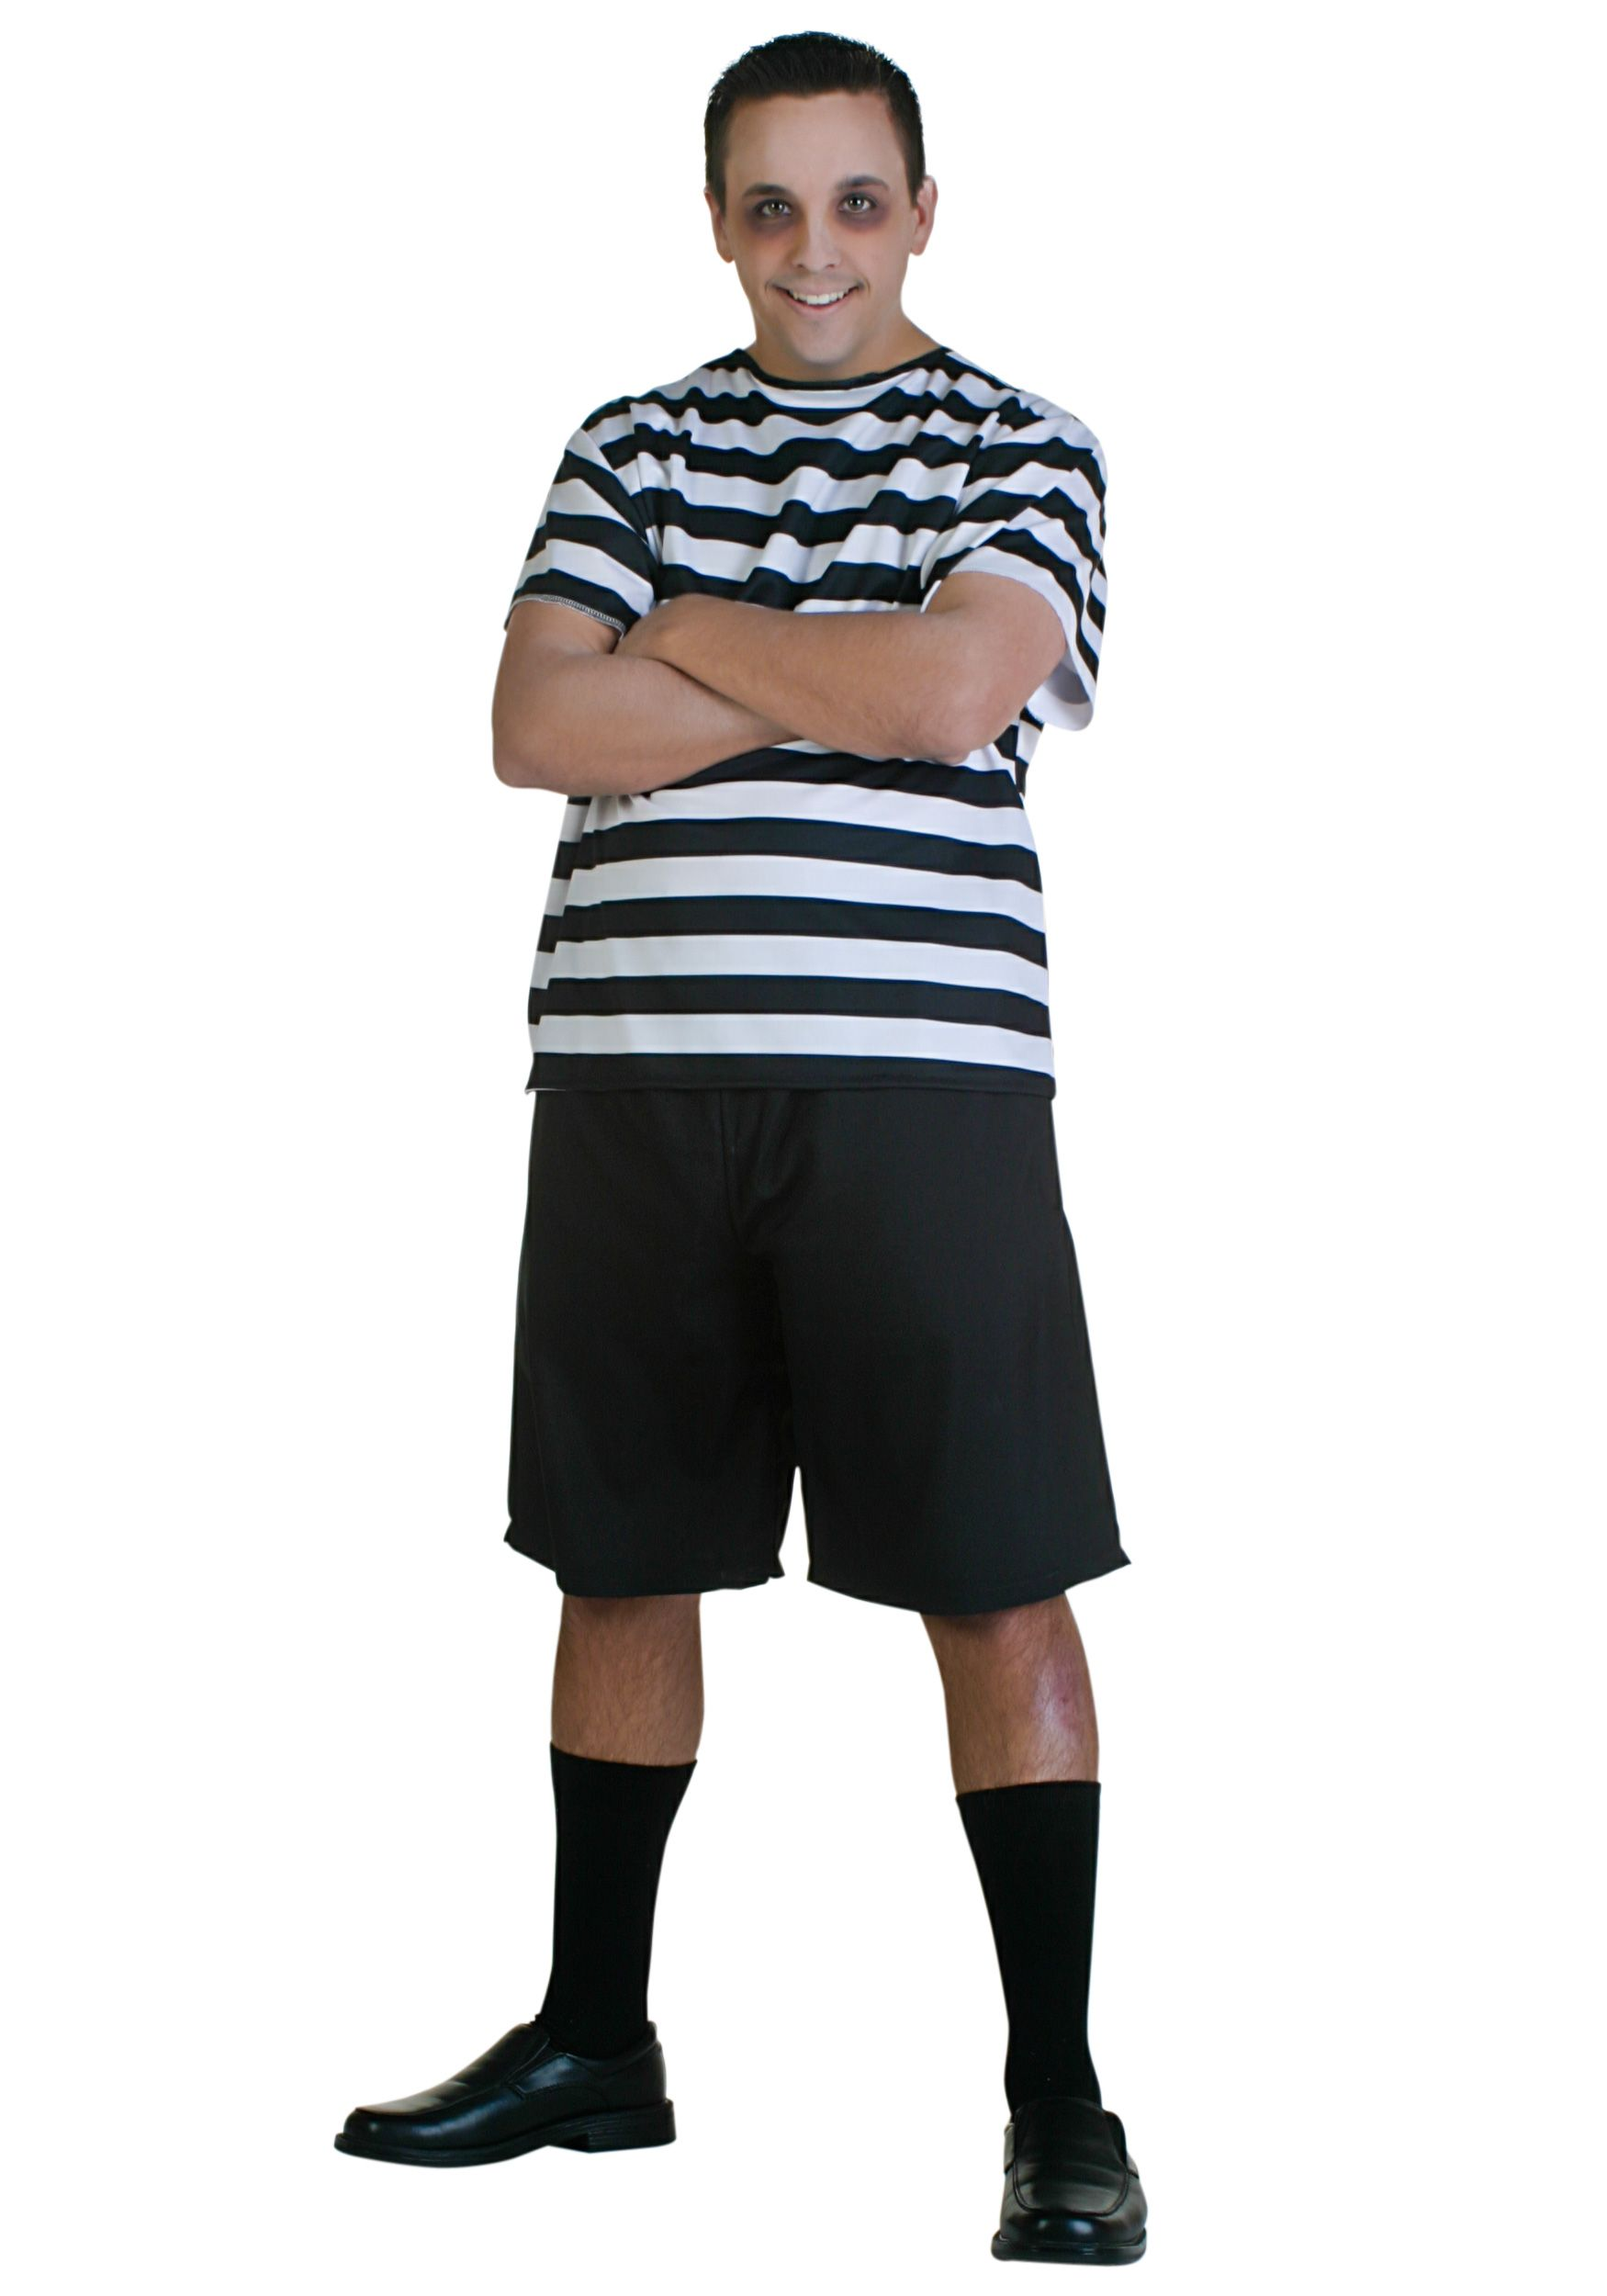 Pugsley Addams Costume Addams Family Addams Family Costumes